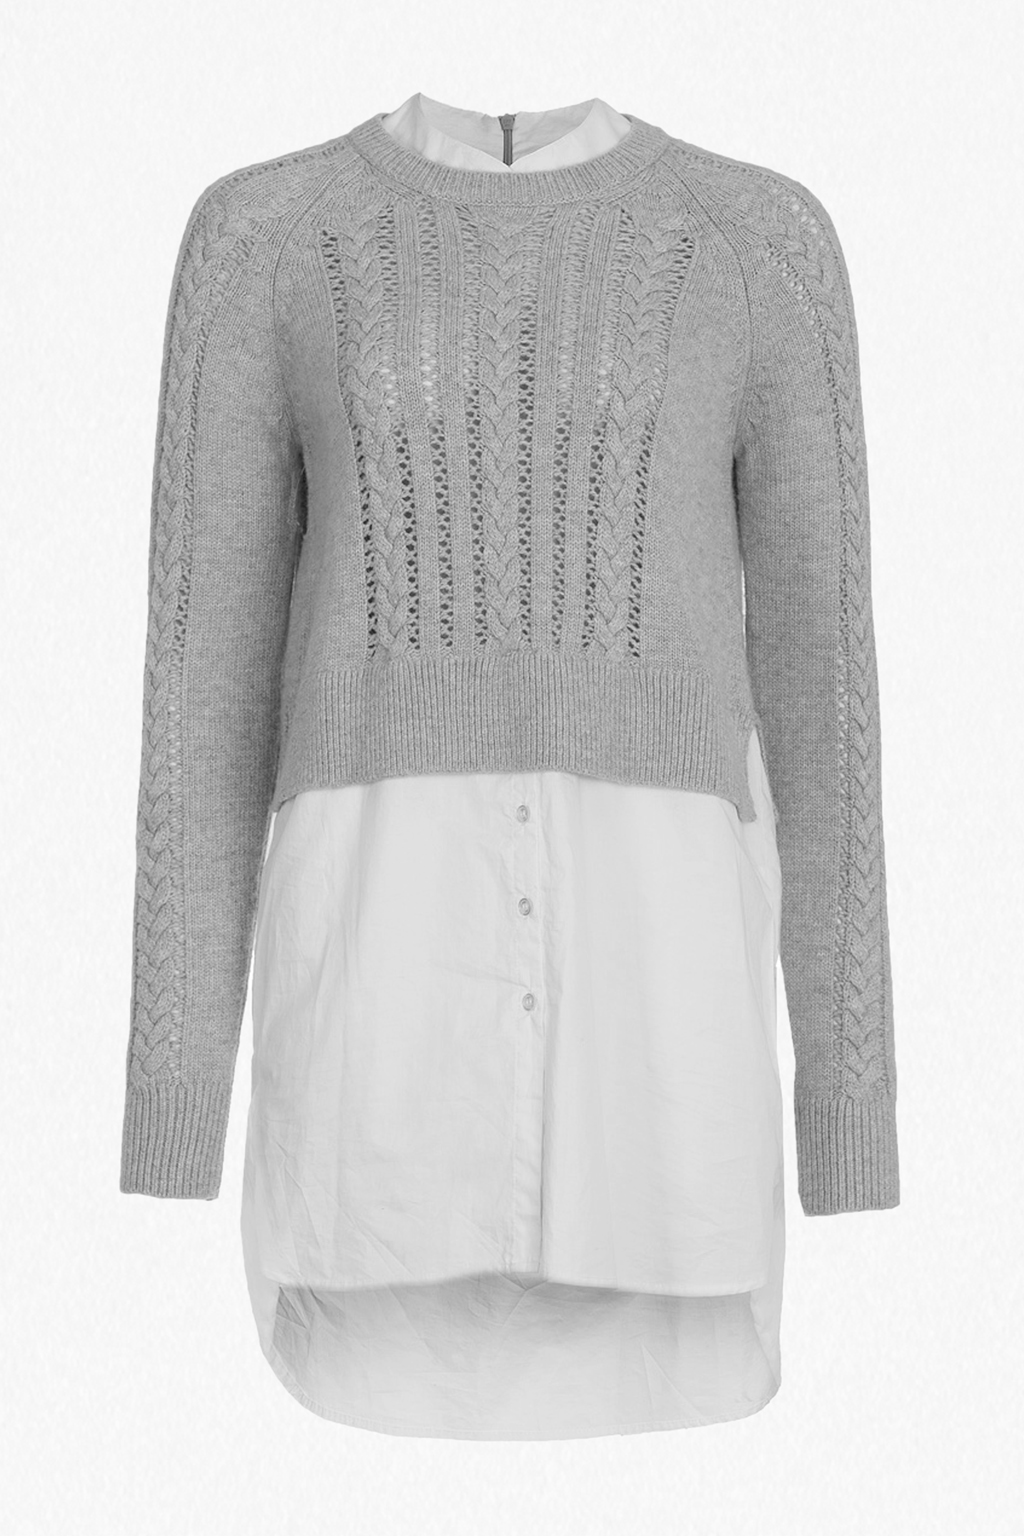 ... crochet cable knit jumper shirt. loading images. ktktakp